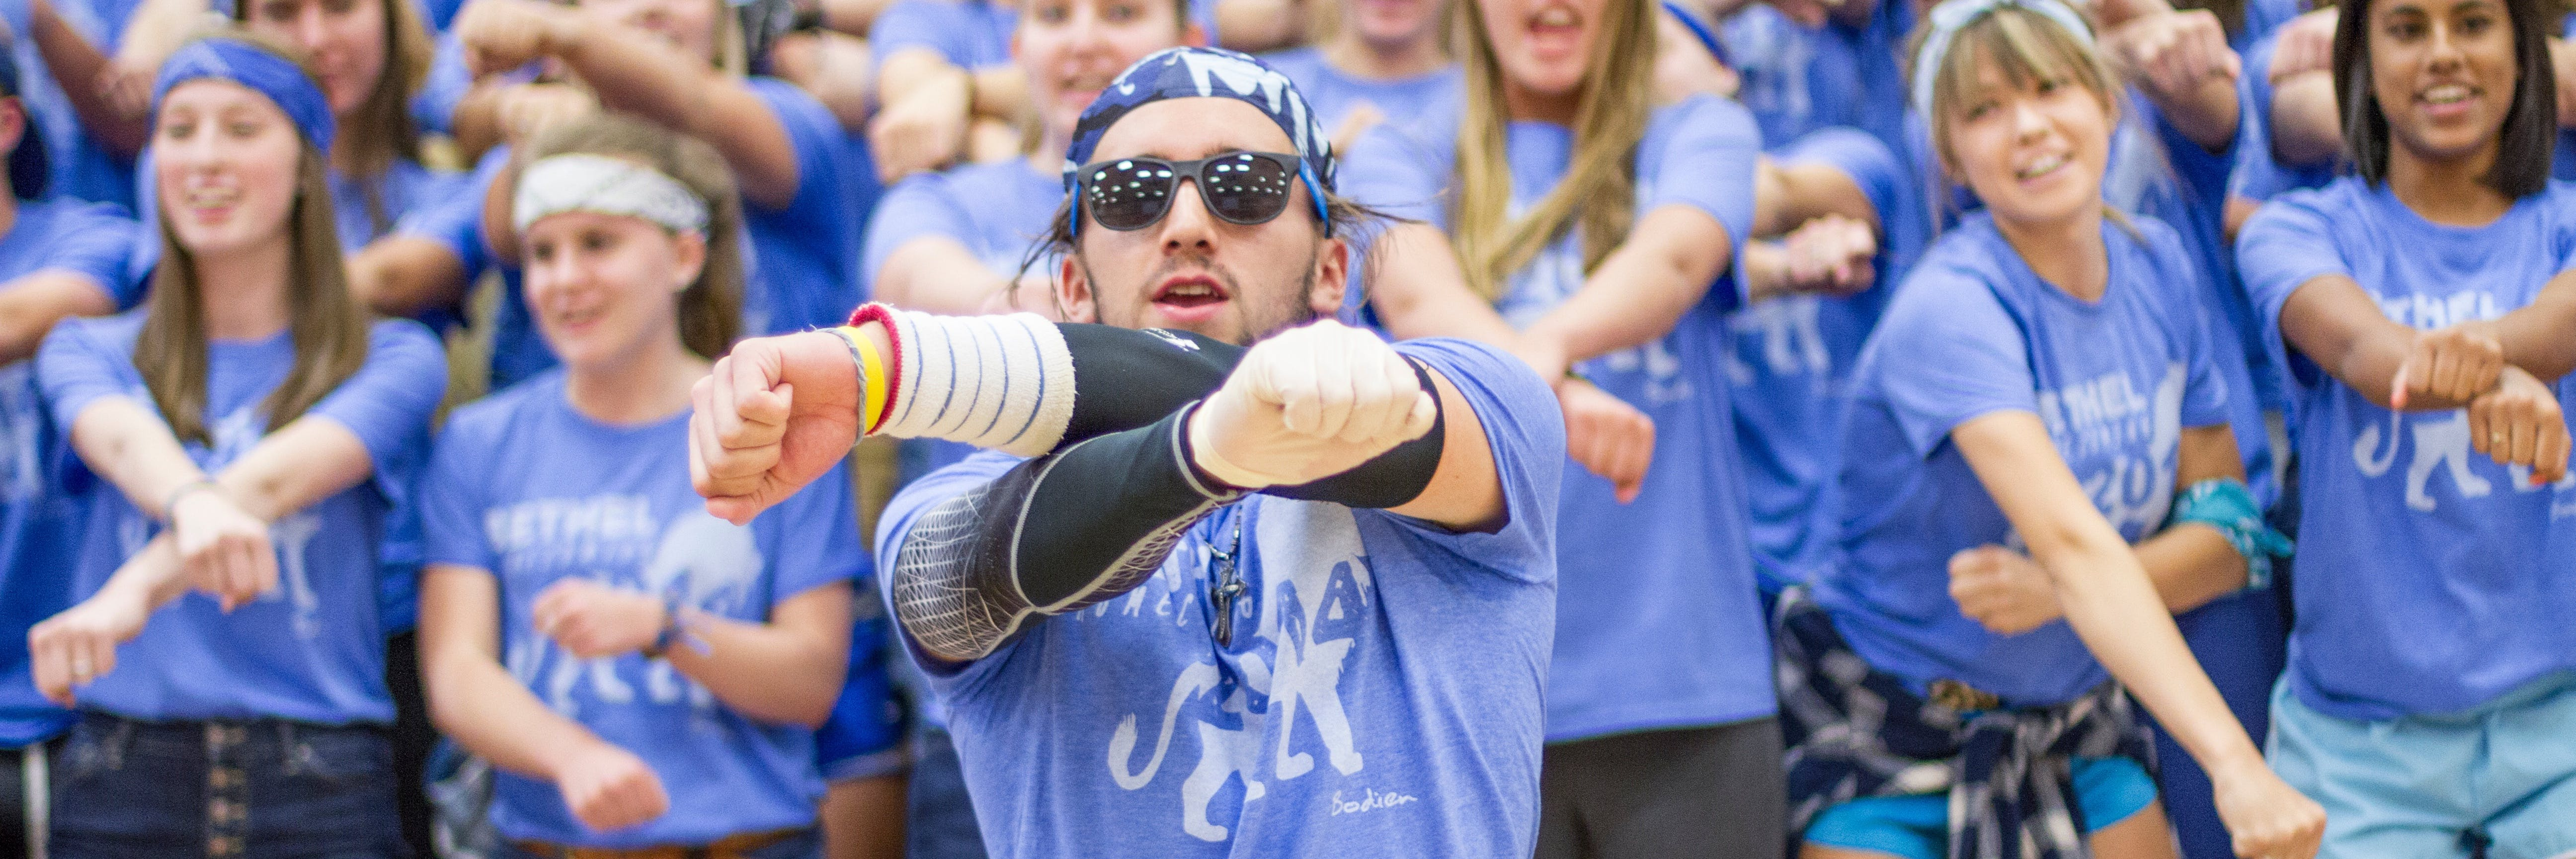 Student leading his residence hall at the homecoming cheer competition